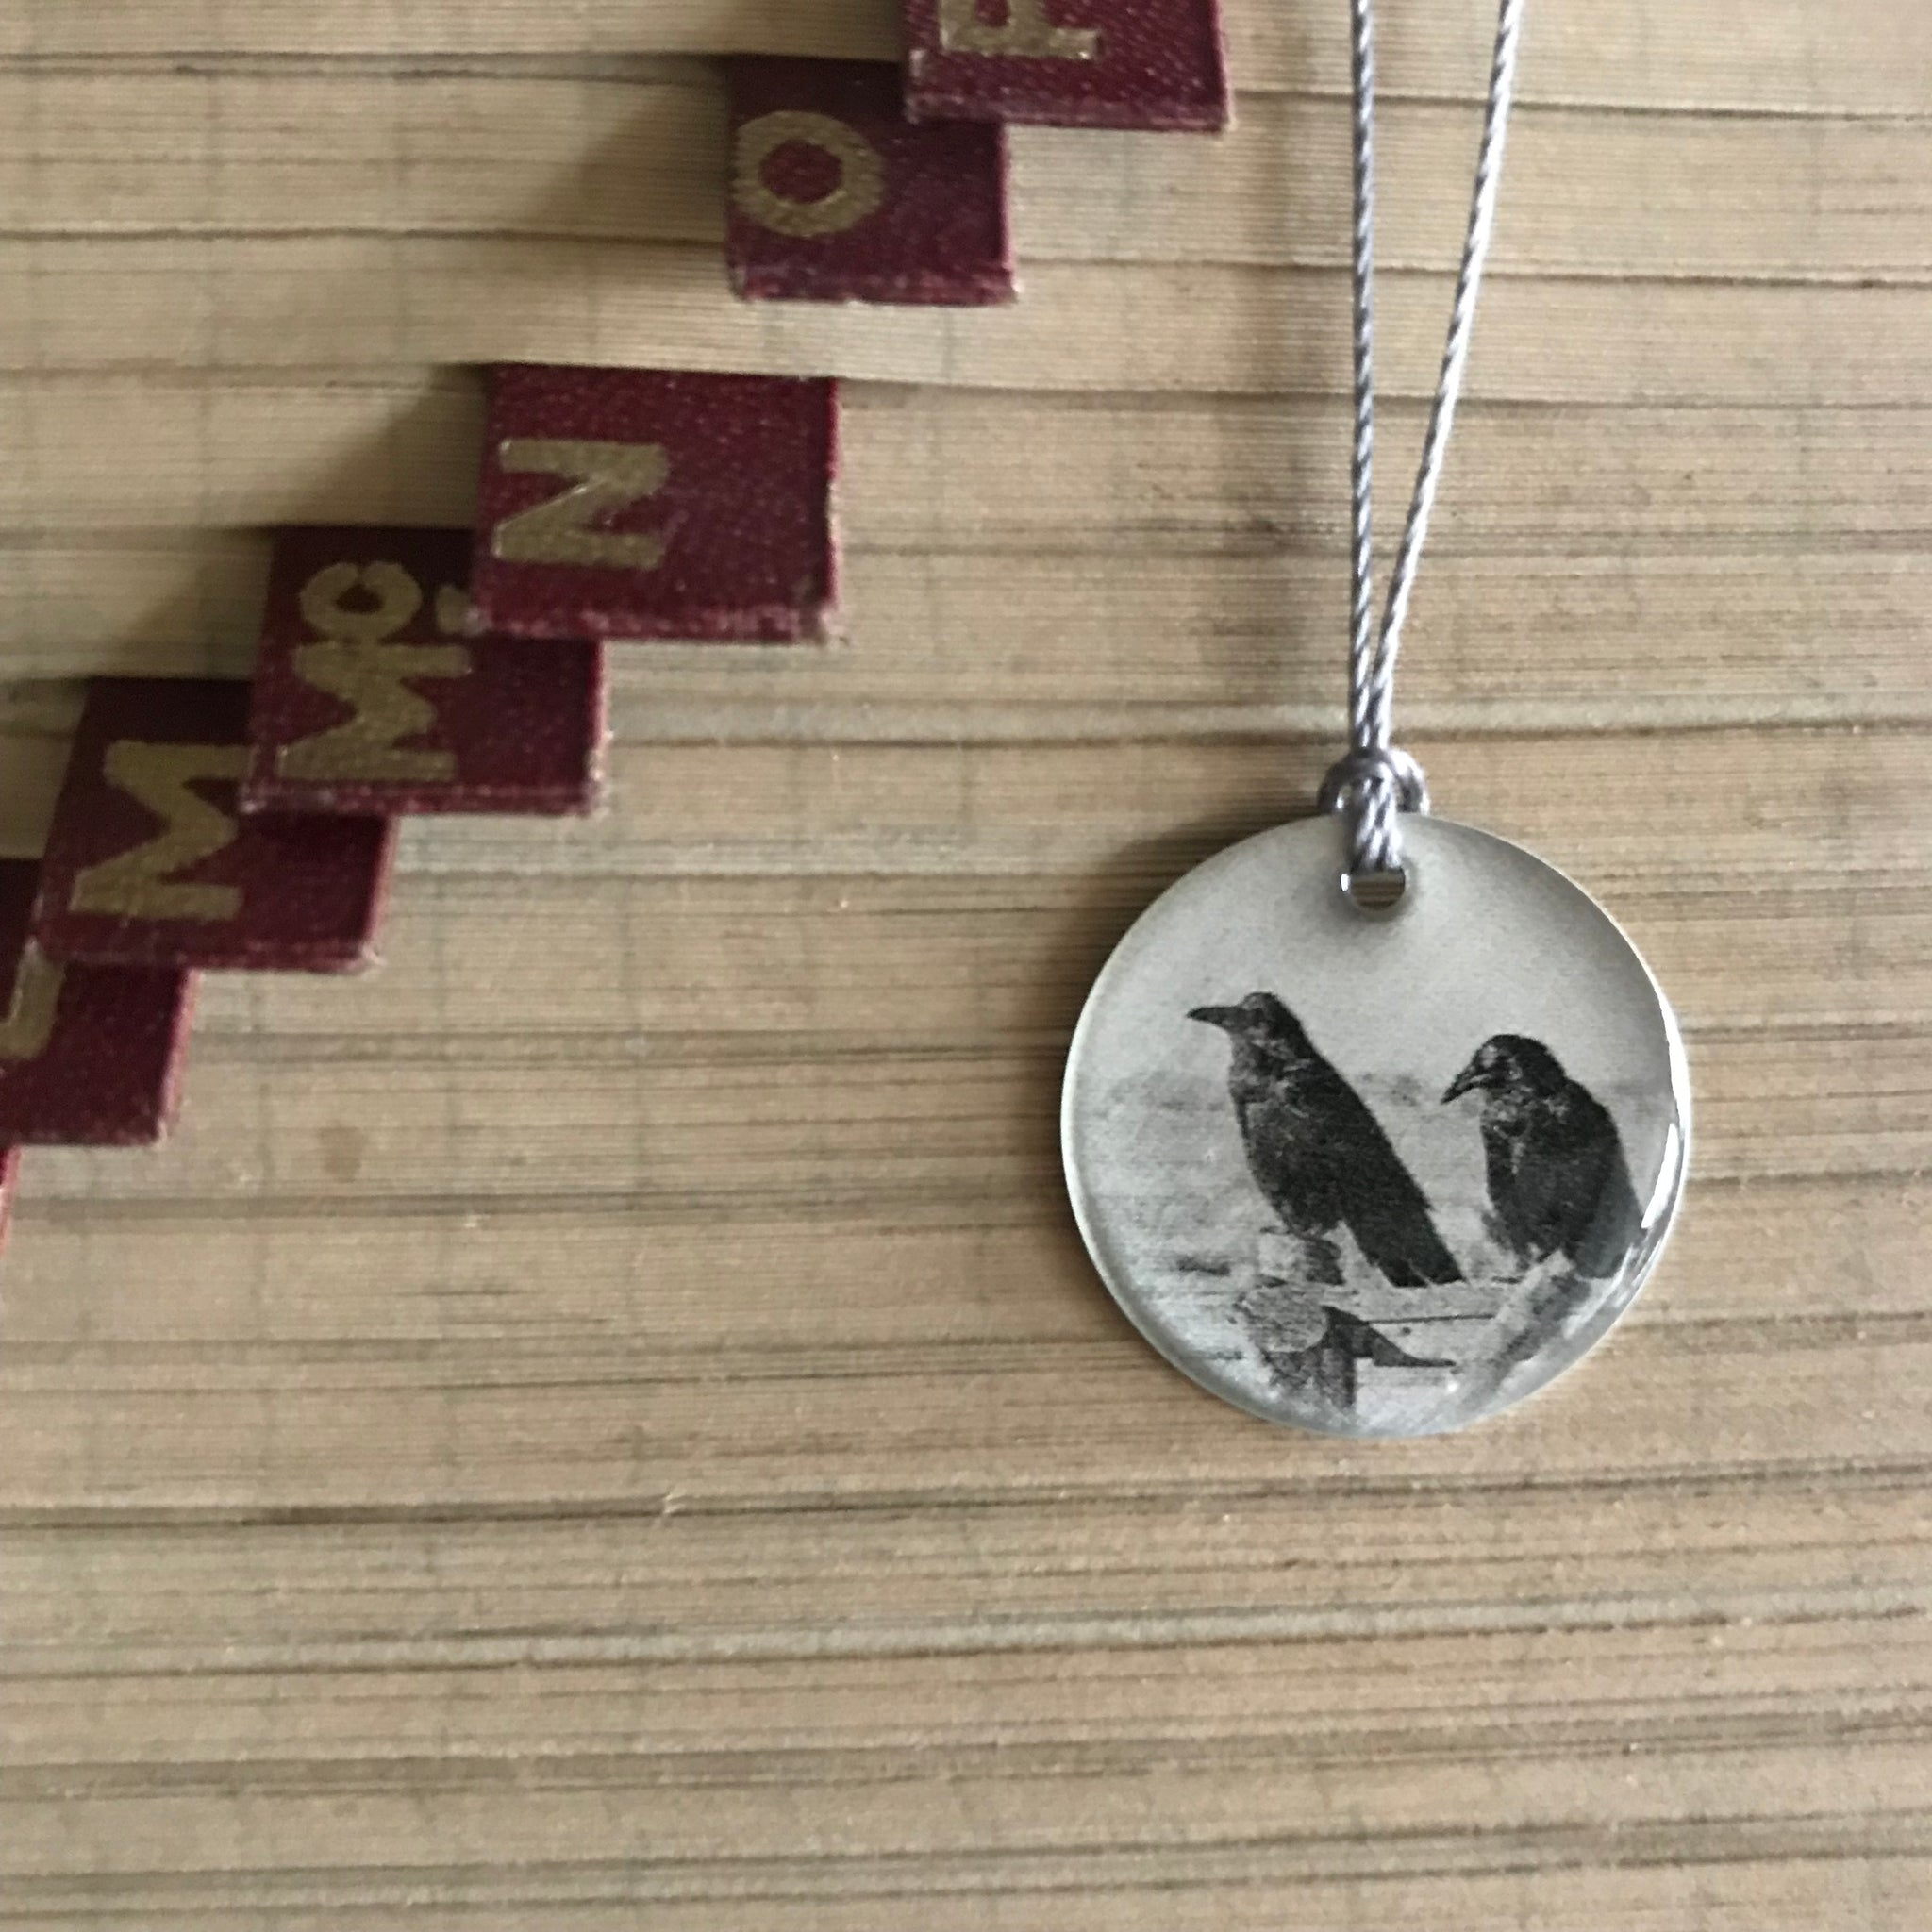 Two Ravens Photo Necklace by Everyday Artifact